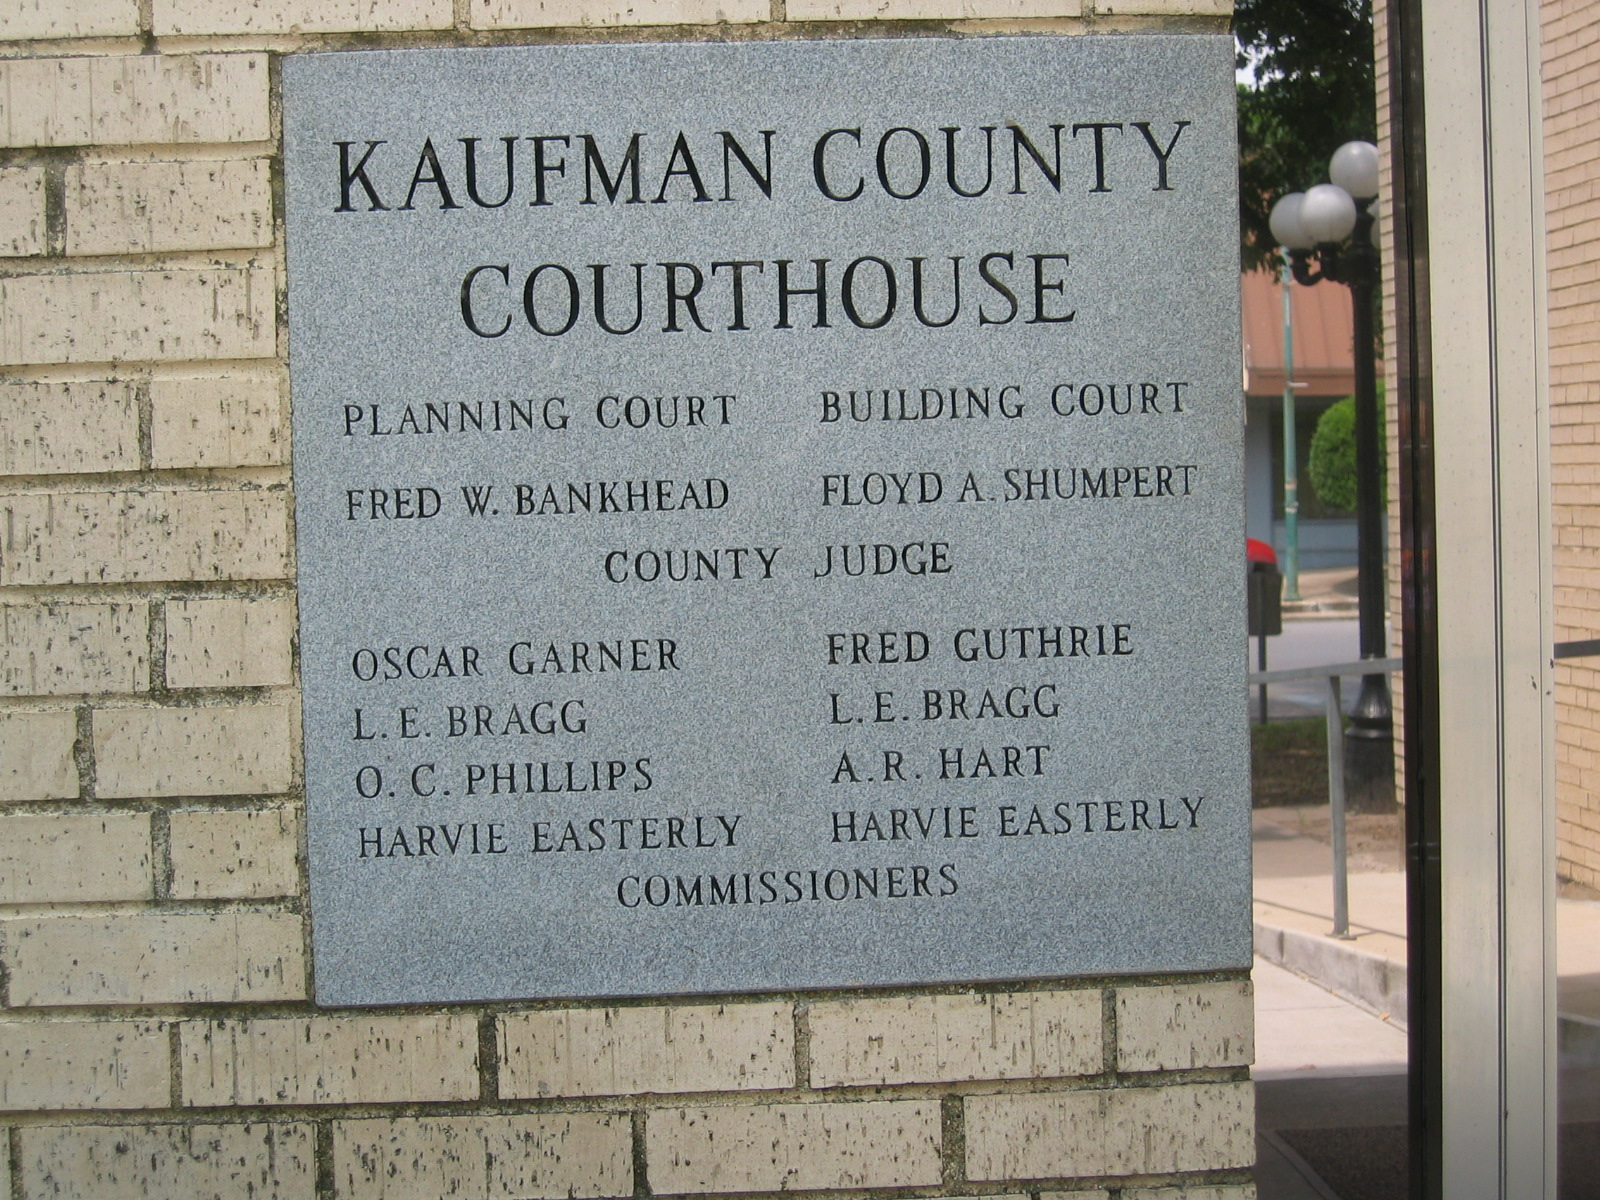 Kaufman County Courthouse | Texas County Courthouses